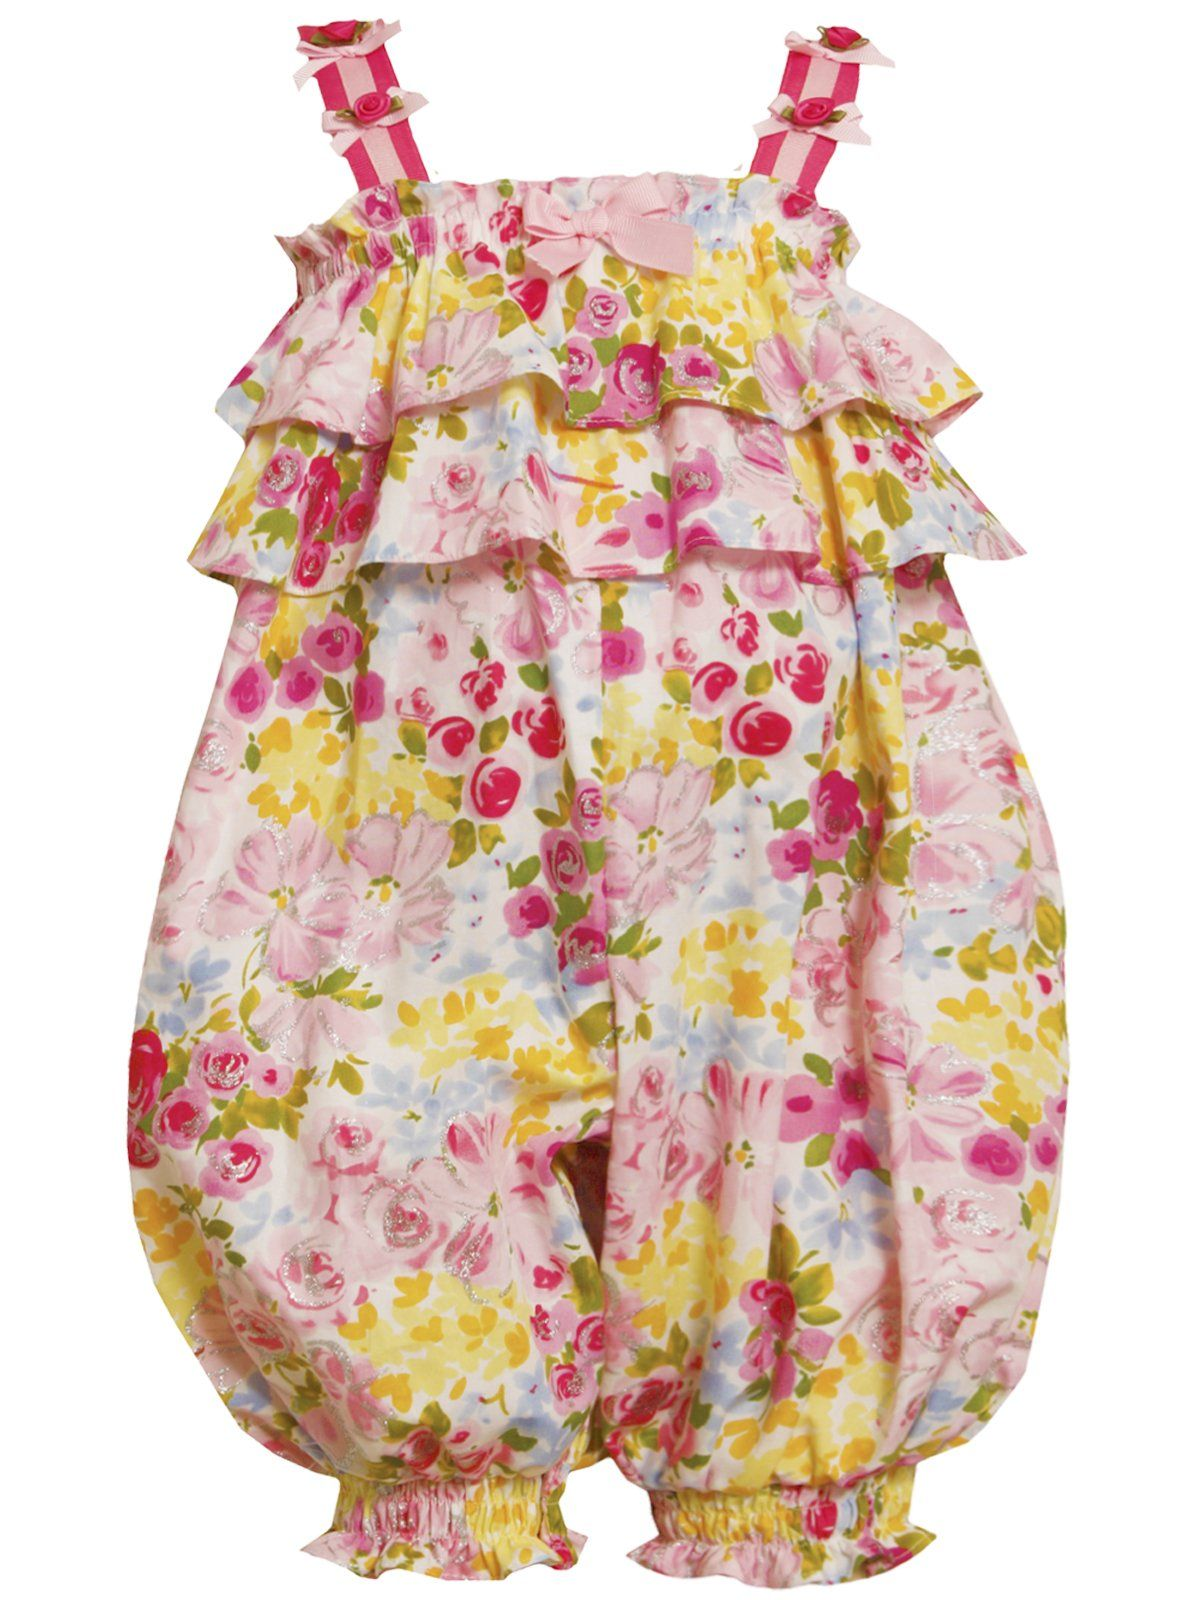 Size-0/3M, Pink, BNJ-8636R, Tiered Ruffle Glitter Floral Print Romper,Bonnie Jean Baby-Newborn Baby Party Dress Outfit